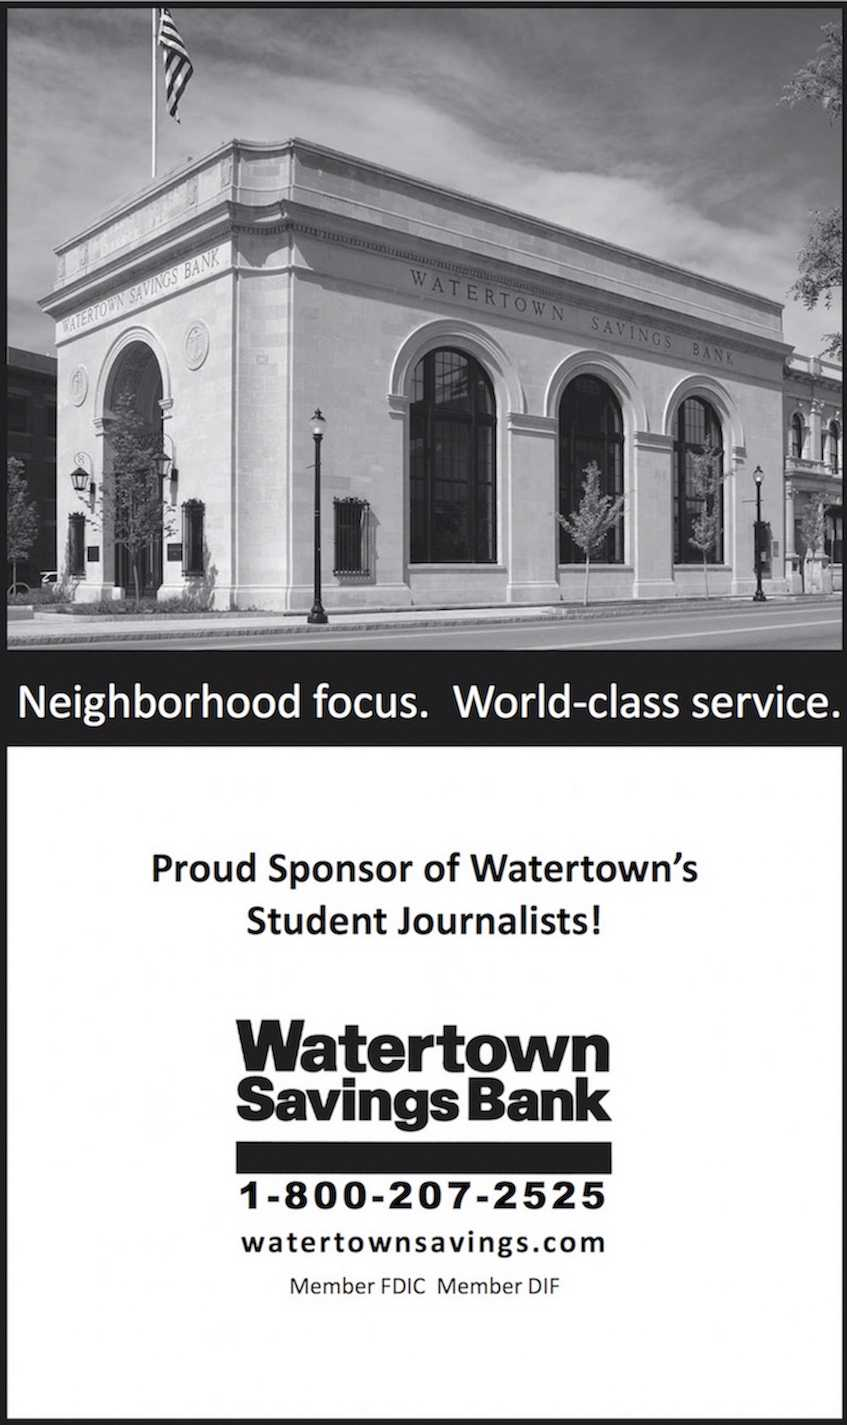 Watertown Savings Bank ad